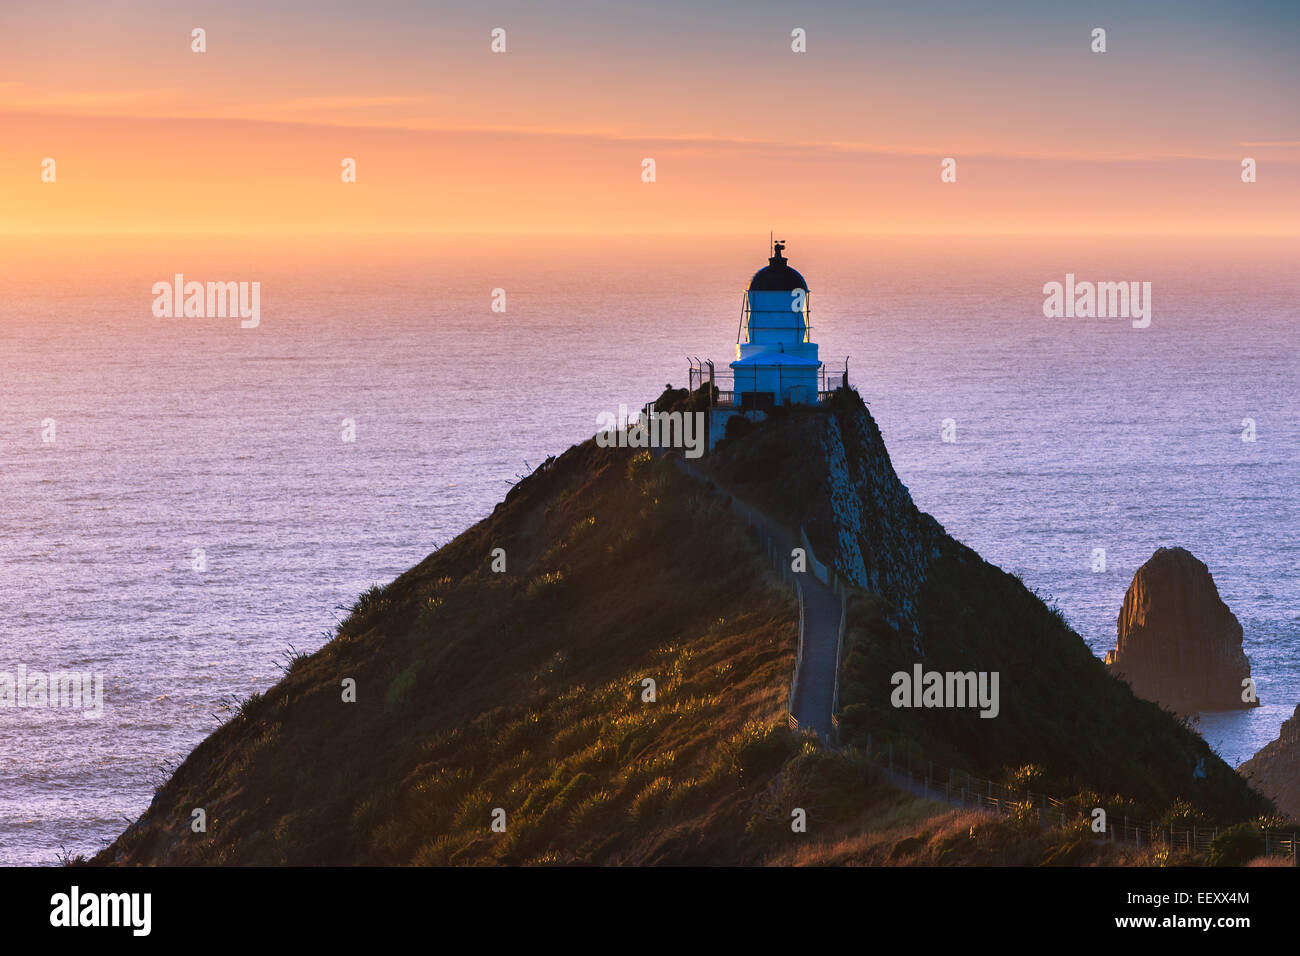 Lighthouse at Nugget Point, Catlins, South Island, New Zealand - Stock Image